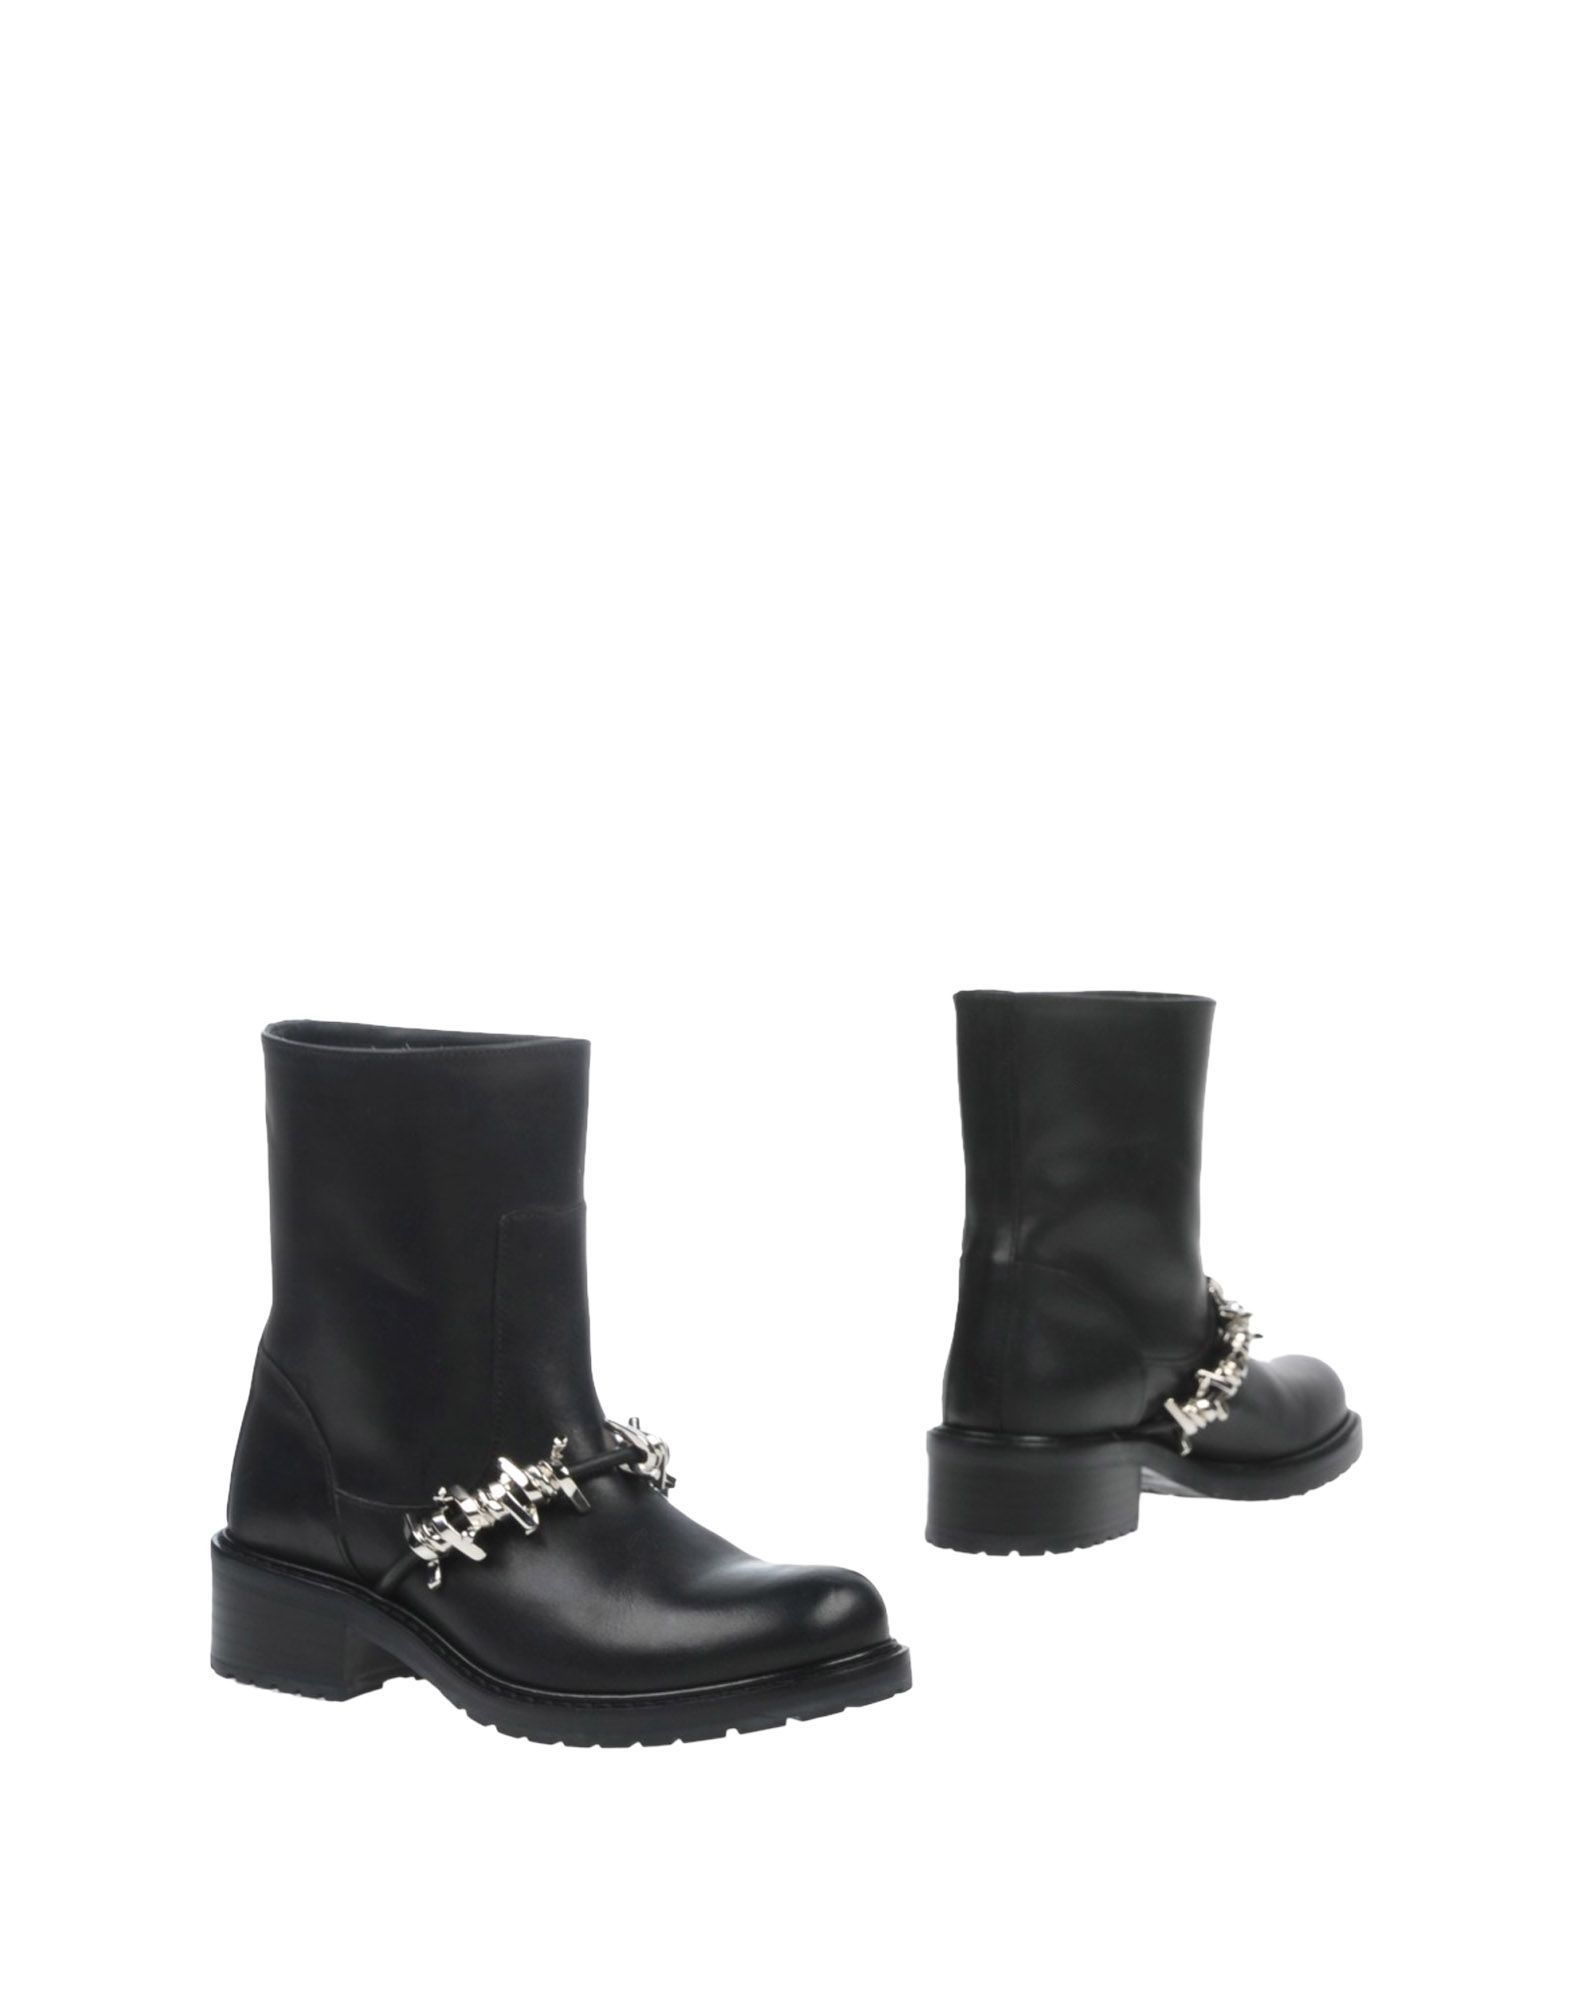 Dsquared2 Ankle Boot Boots - Women Dsquared2 Ankle Boots Boot online on  United Kingdom - 11043590WO 510e65